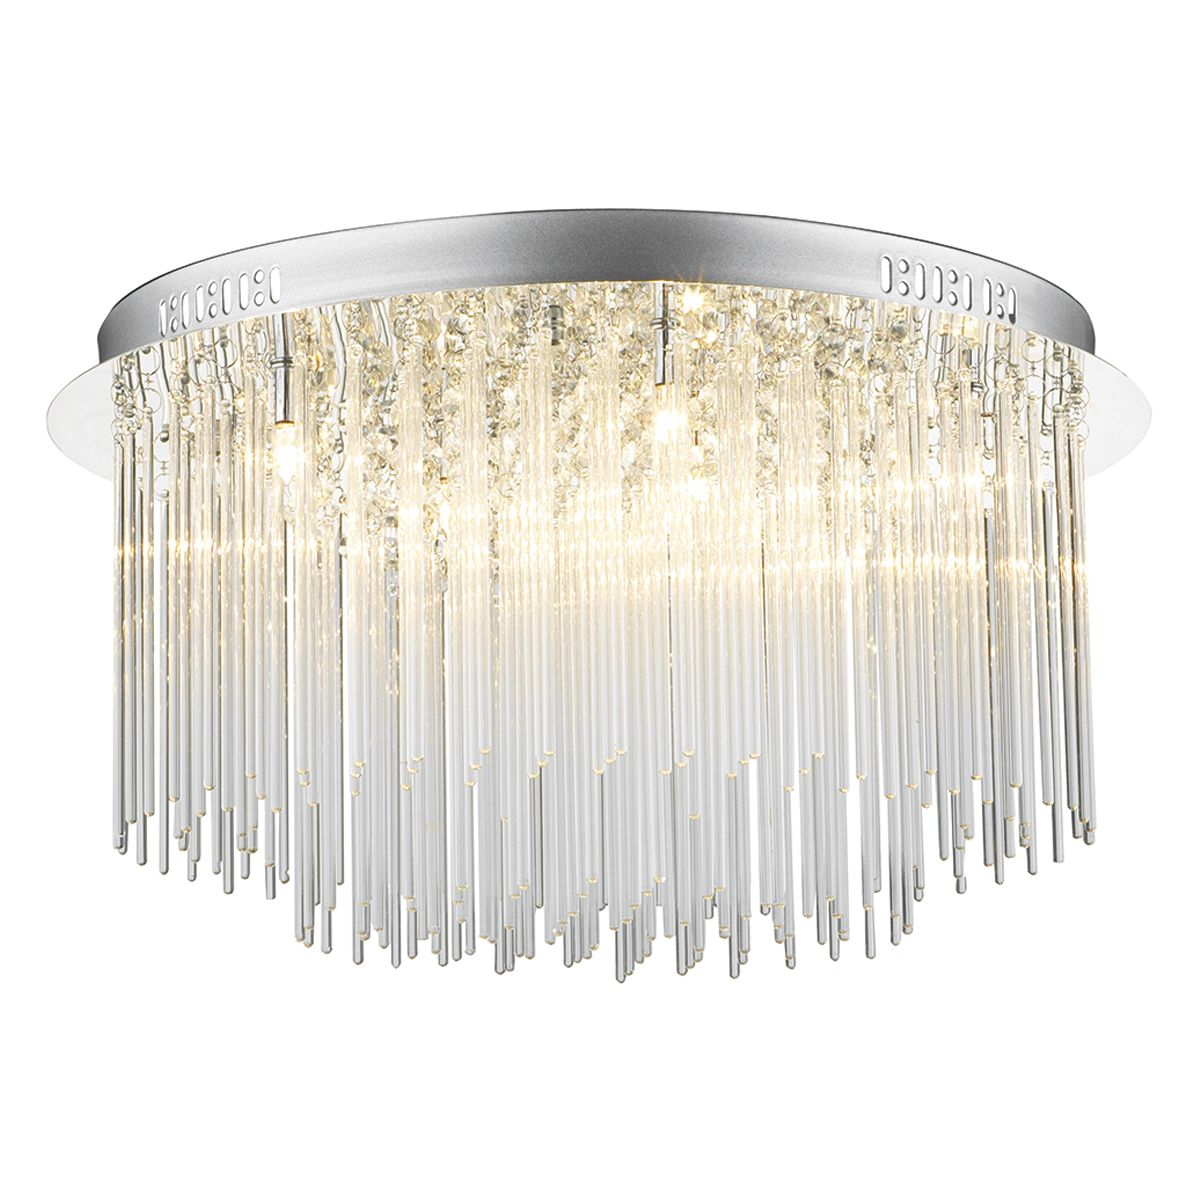 Icicle 8 Bulb Glass Tube Flush Ceiling Light